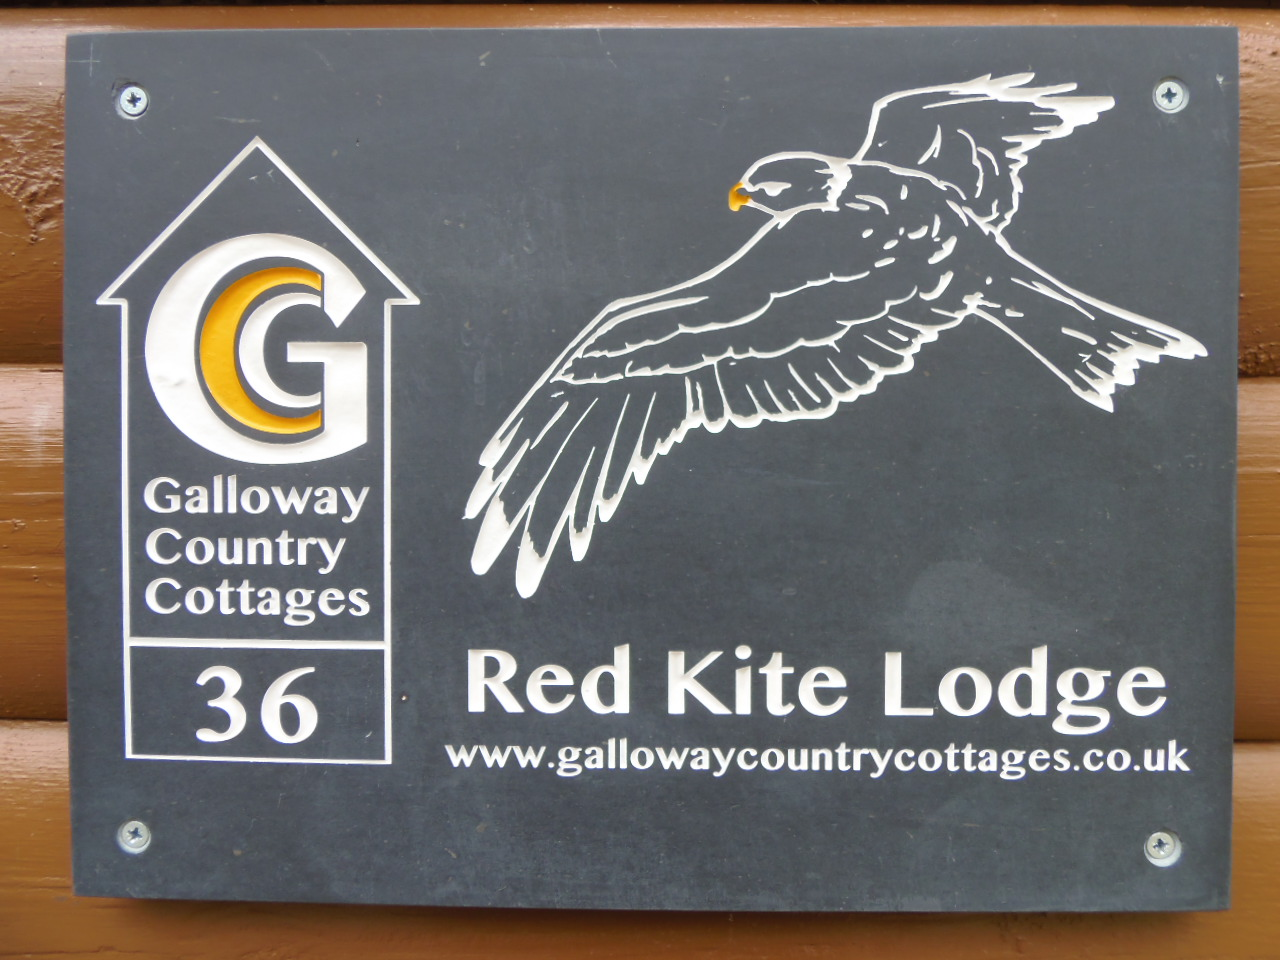 Red Kite Lodge - Name Plaque